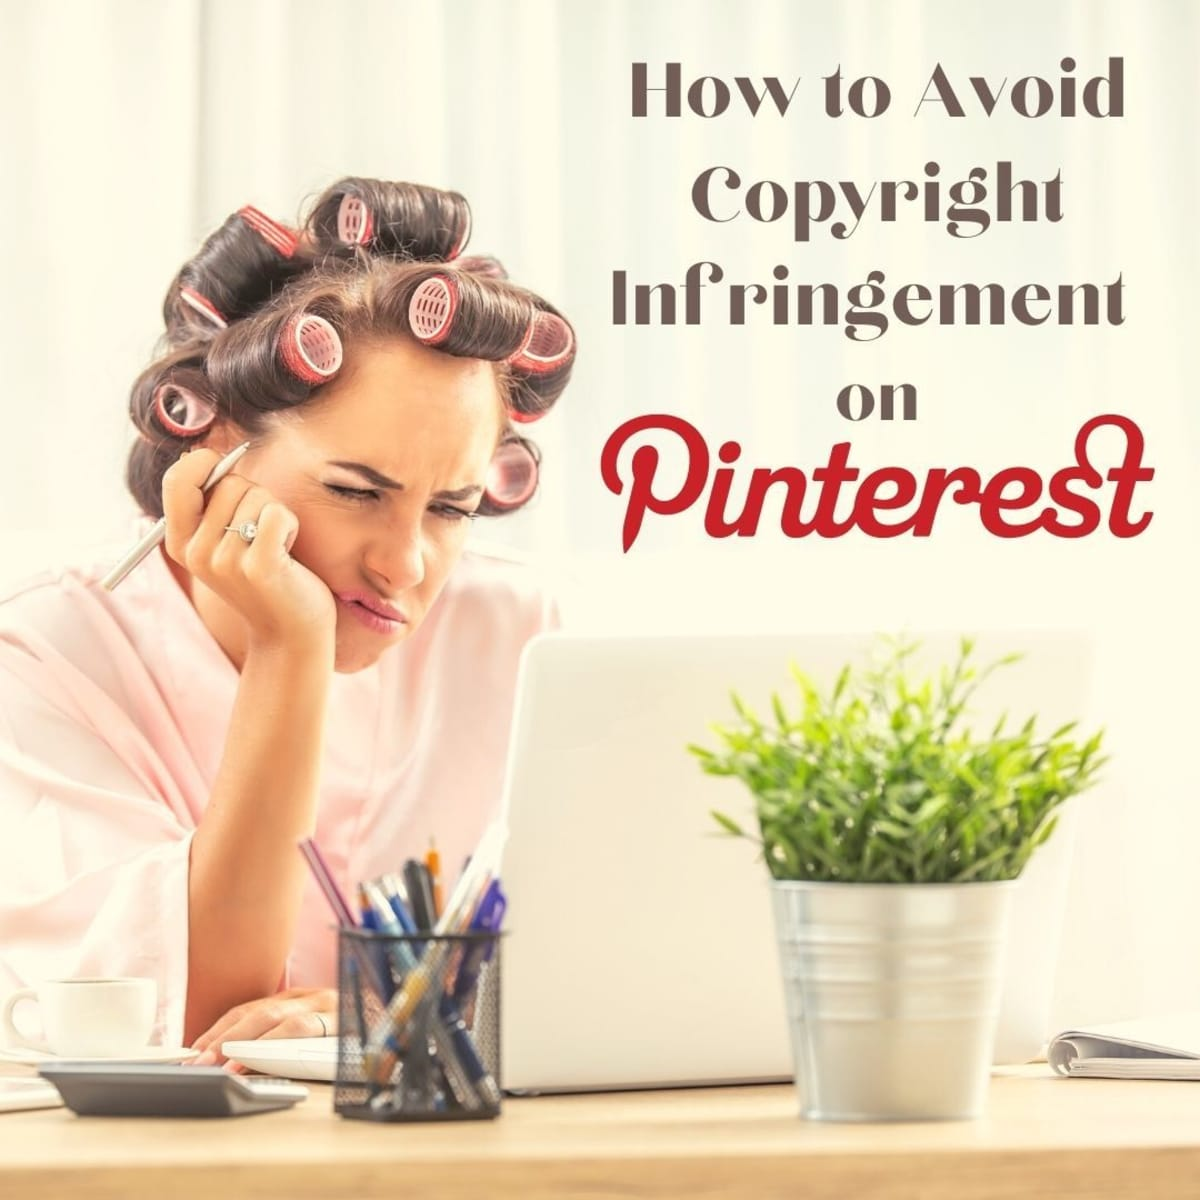 Pinterest And Copyright How To Use Pinterest Legally Turbofuture Technology